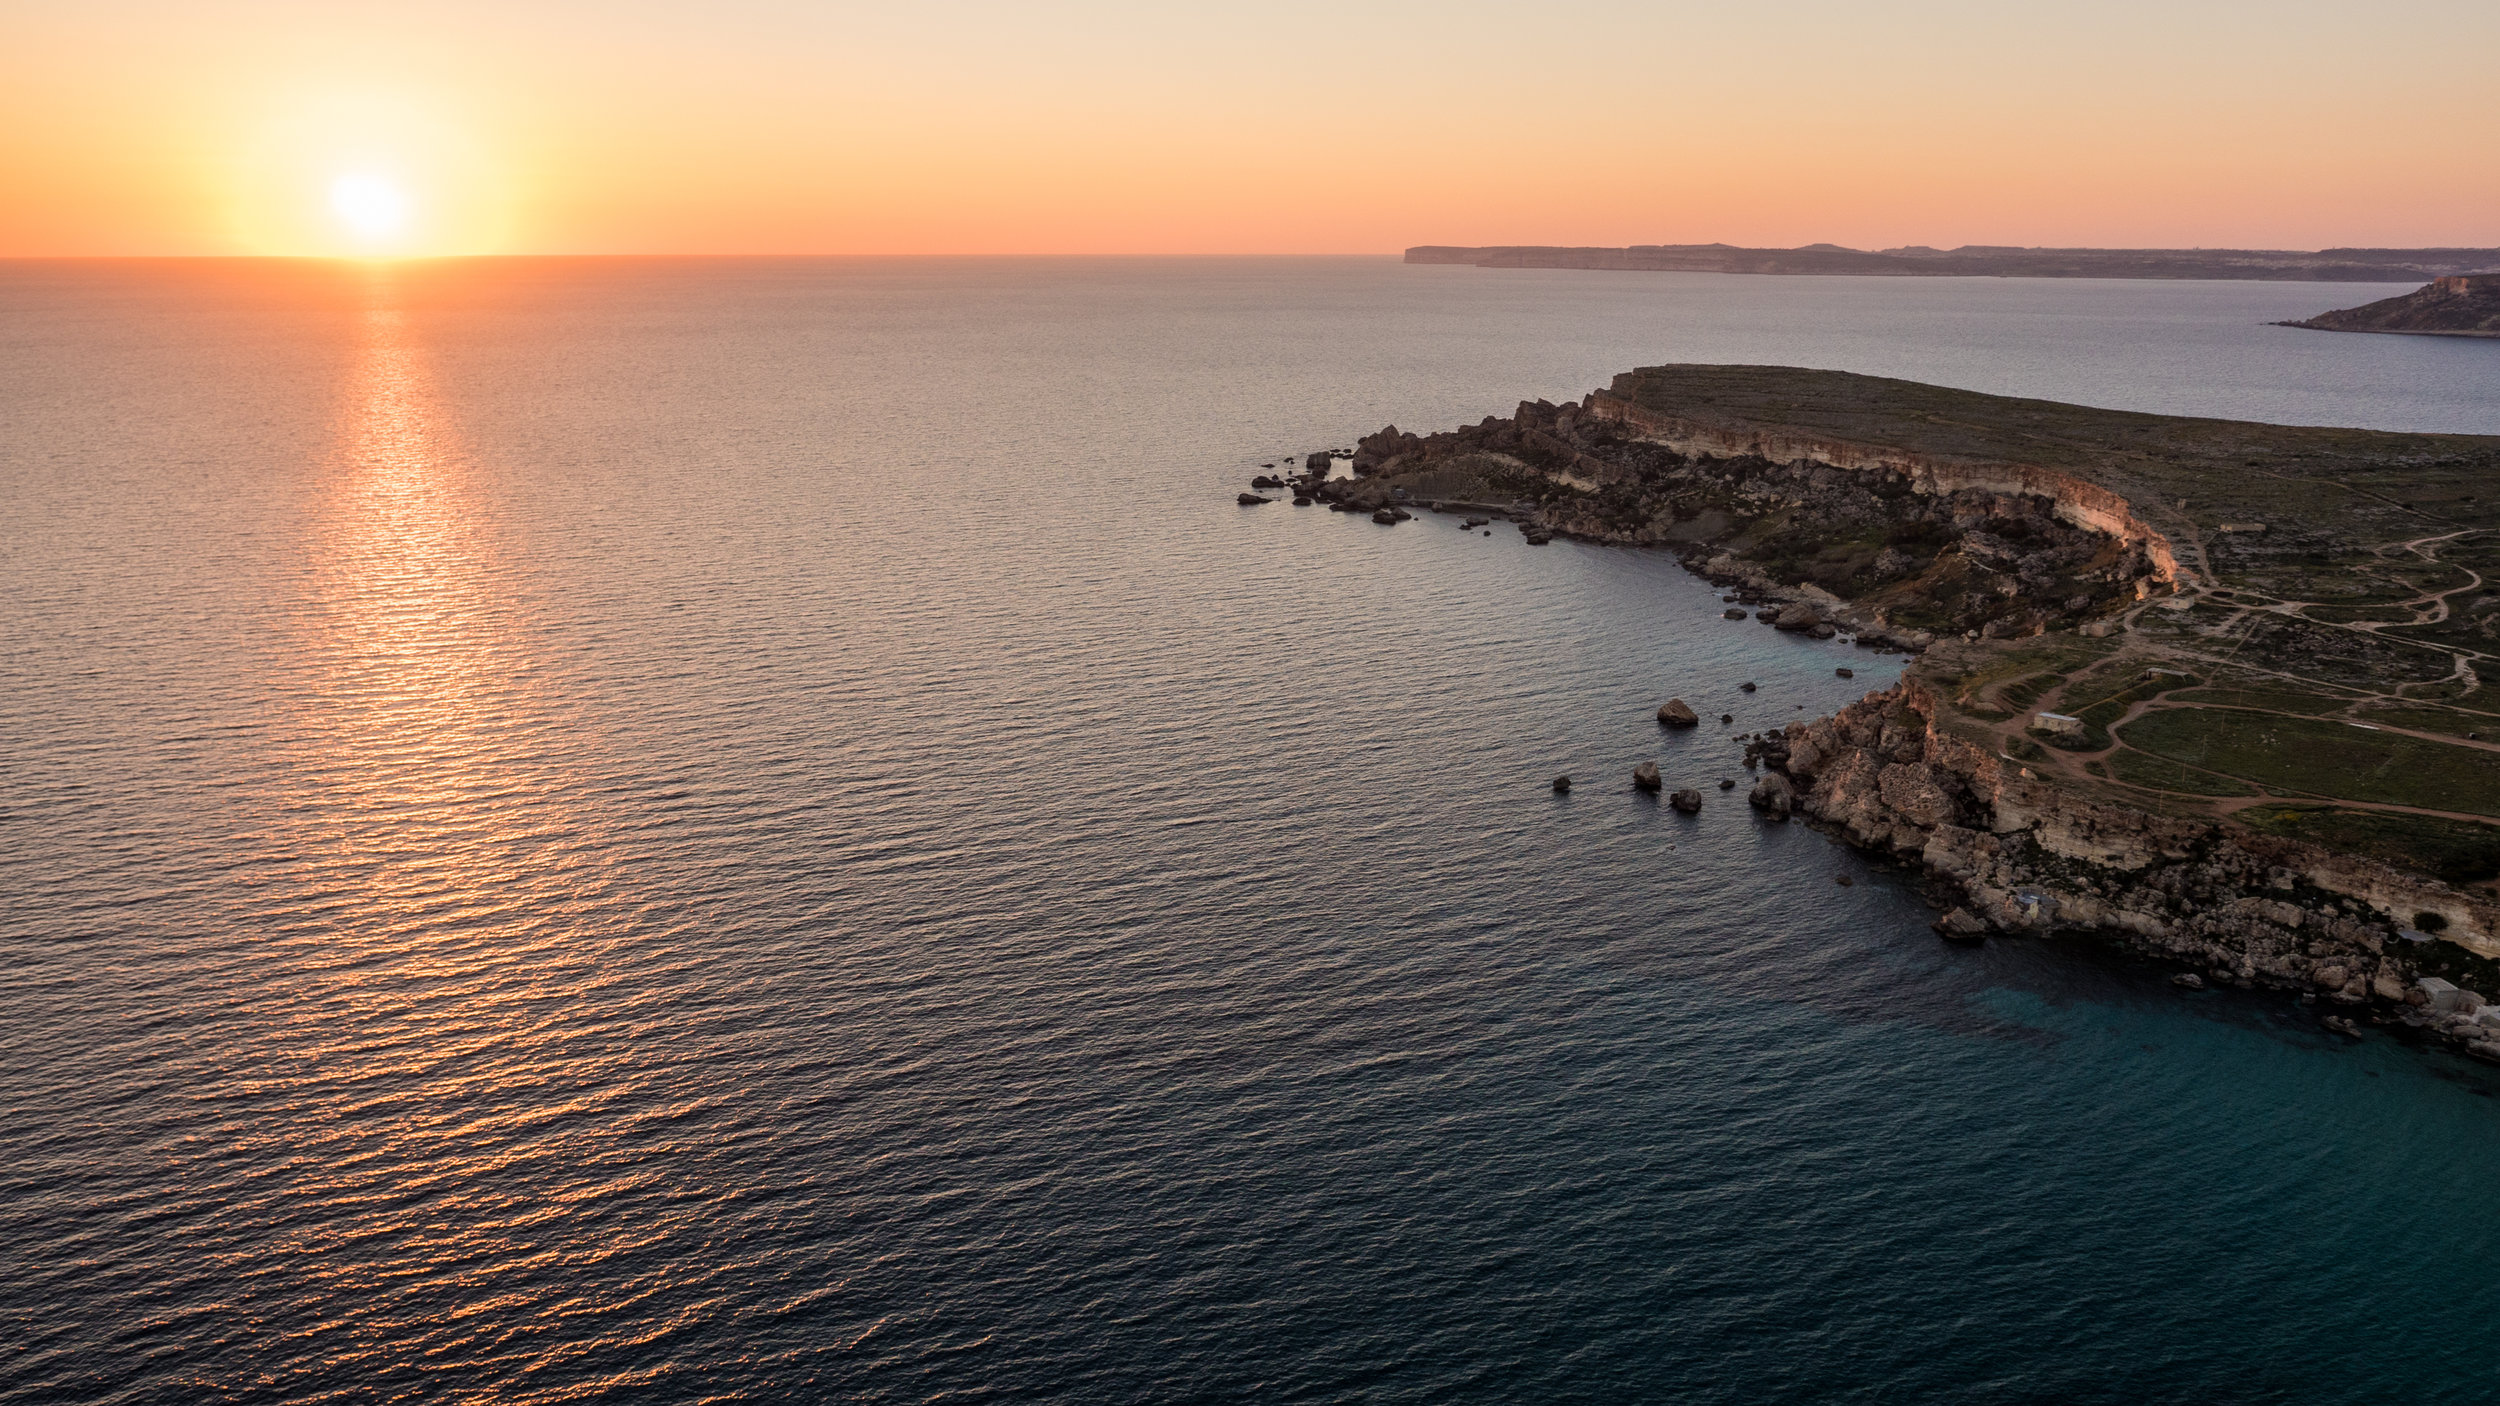 Aerial view of sunset on Golden Bay, Malta, one of my favourite sunset viewing points on the island